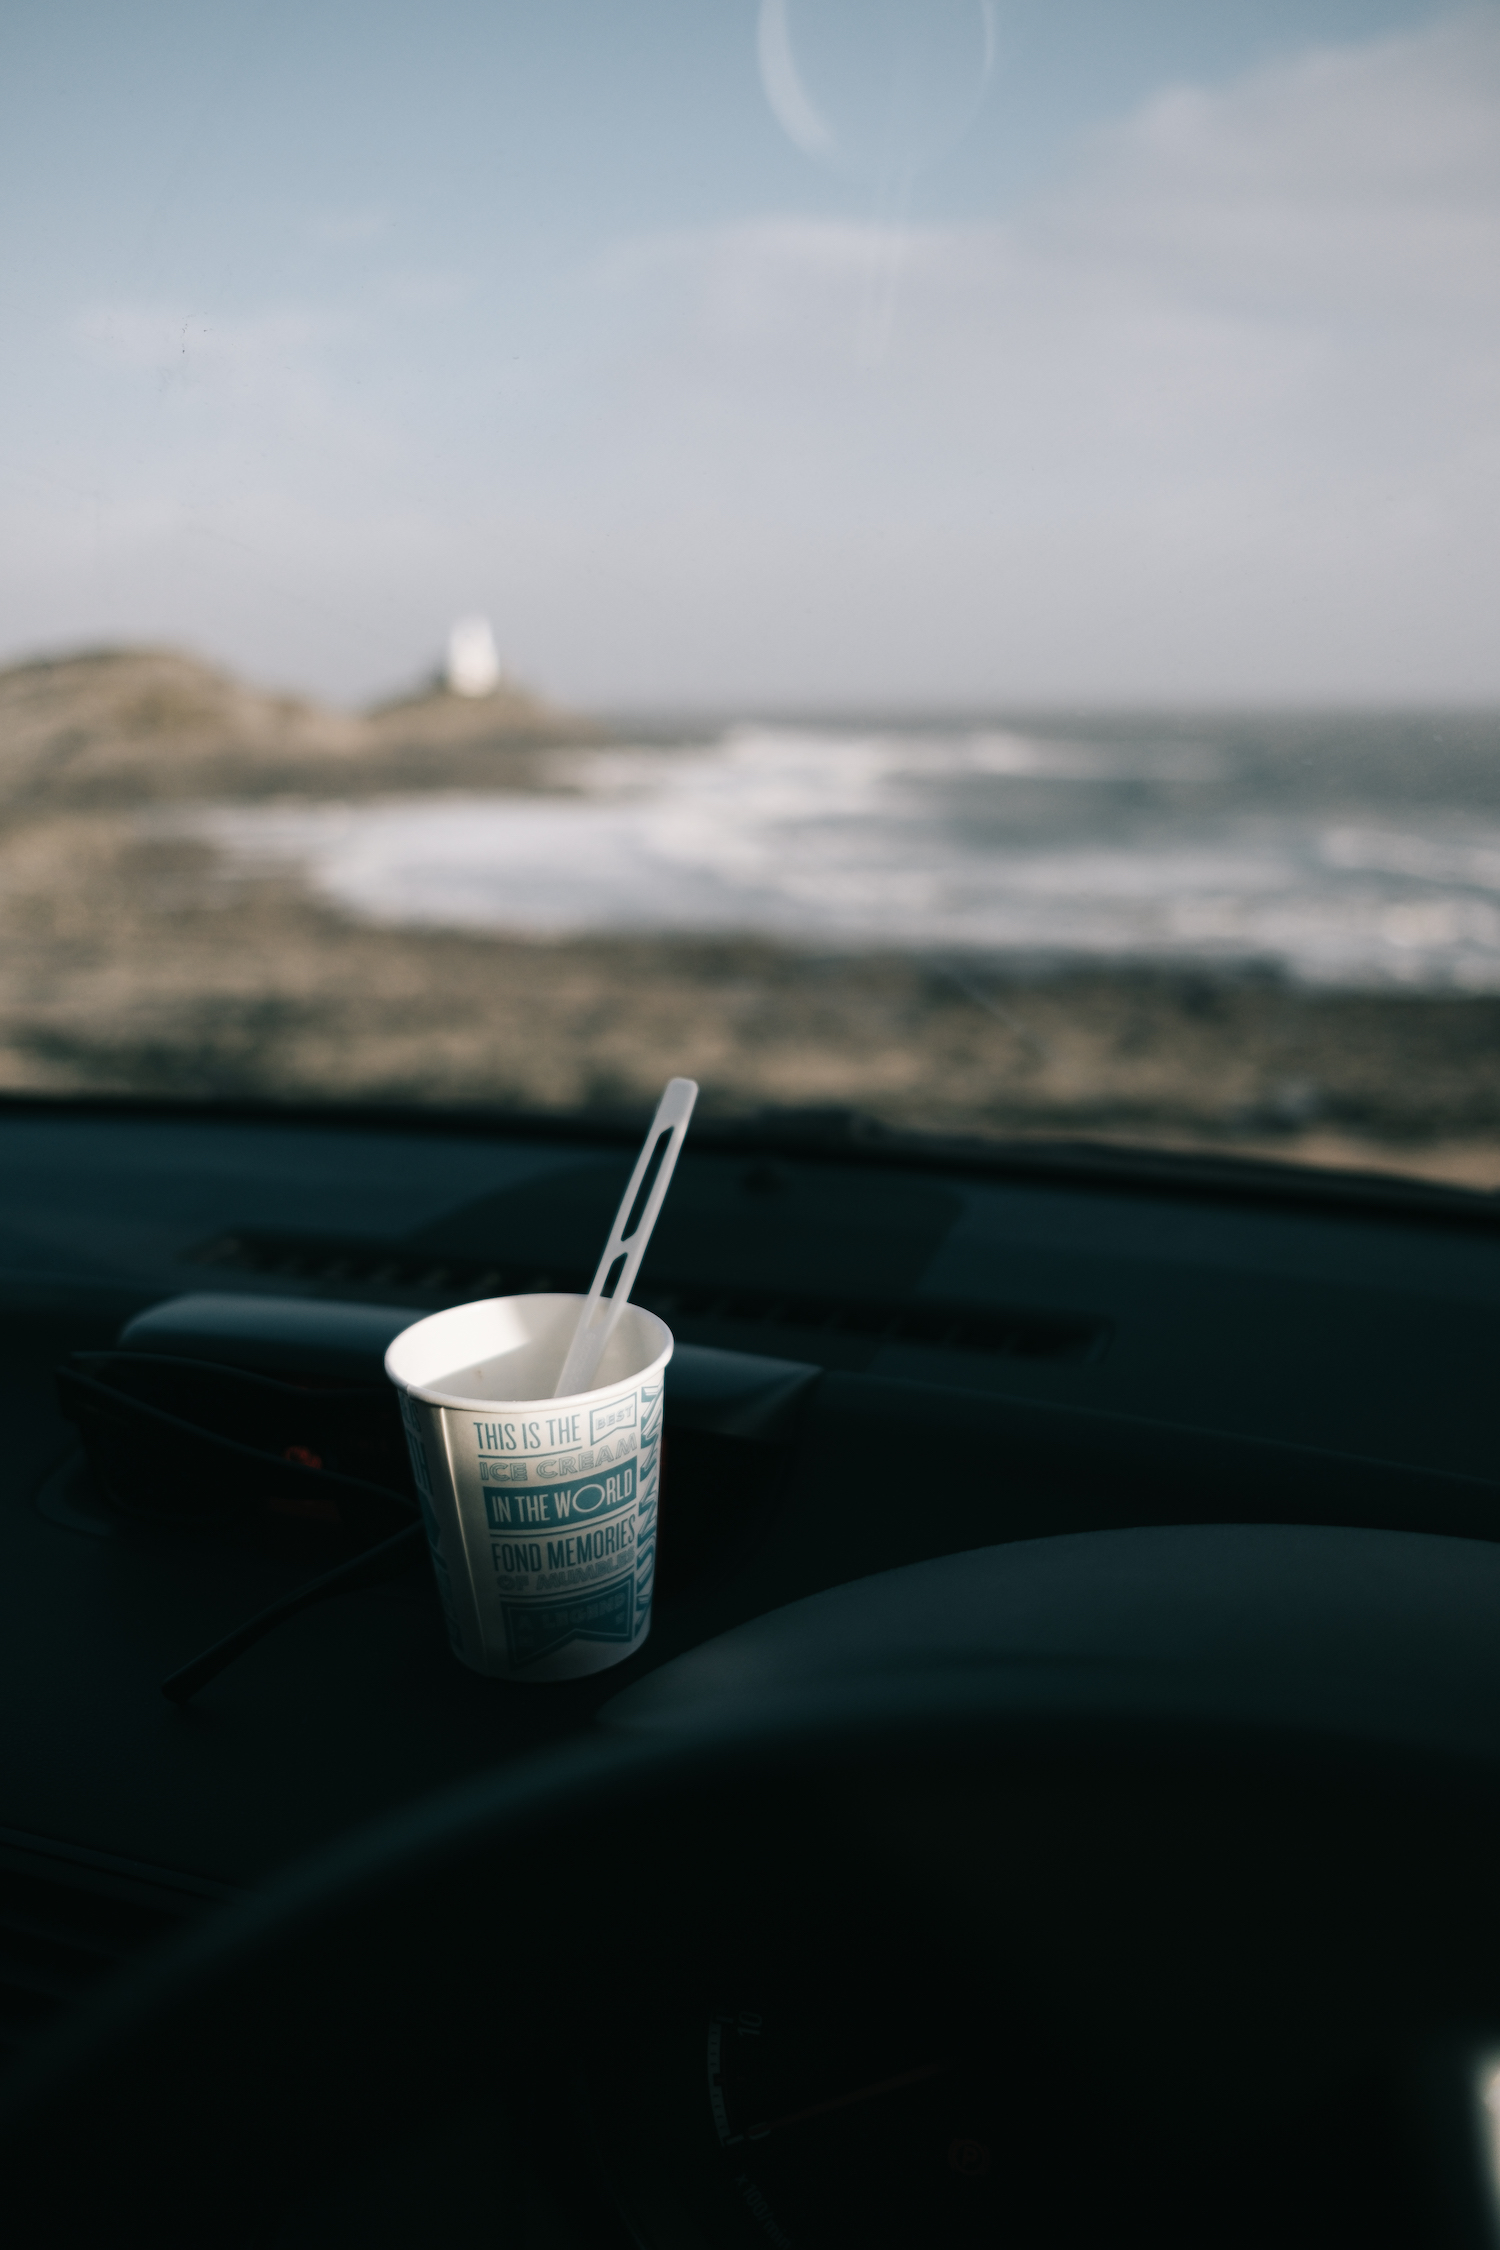 Bracelet Bay with Joe's Ice Cream : Gower Peninsula, Swansea - by Ben Holbrook from DriftwoodJournals.com3